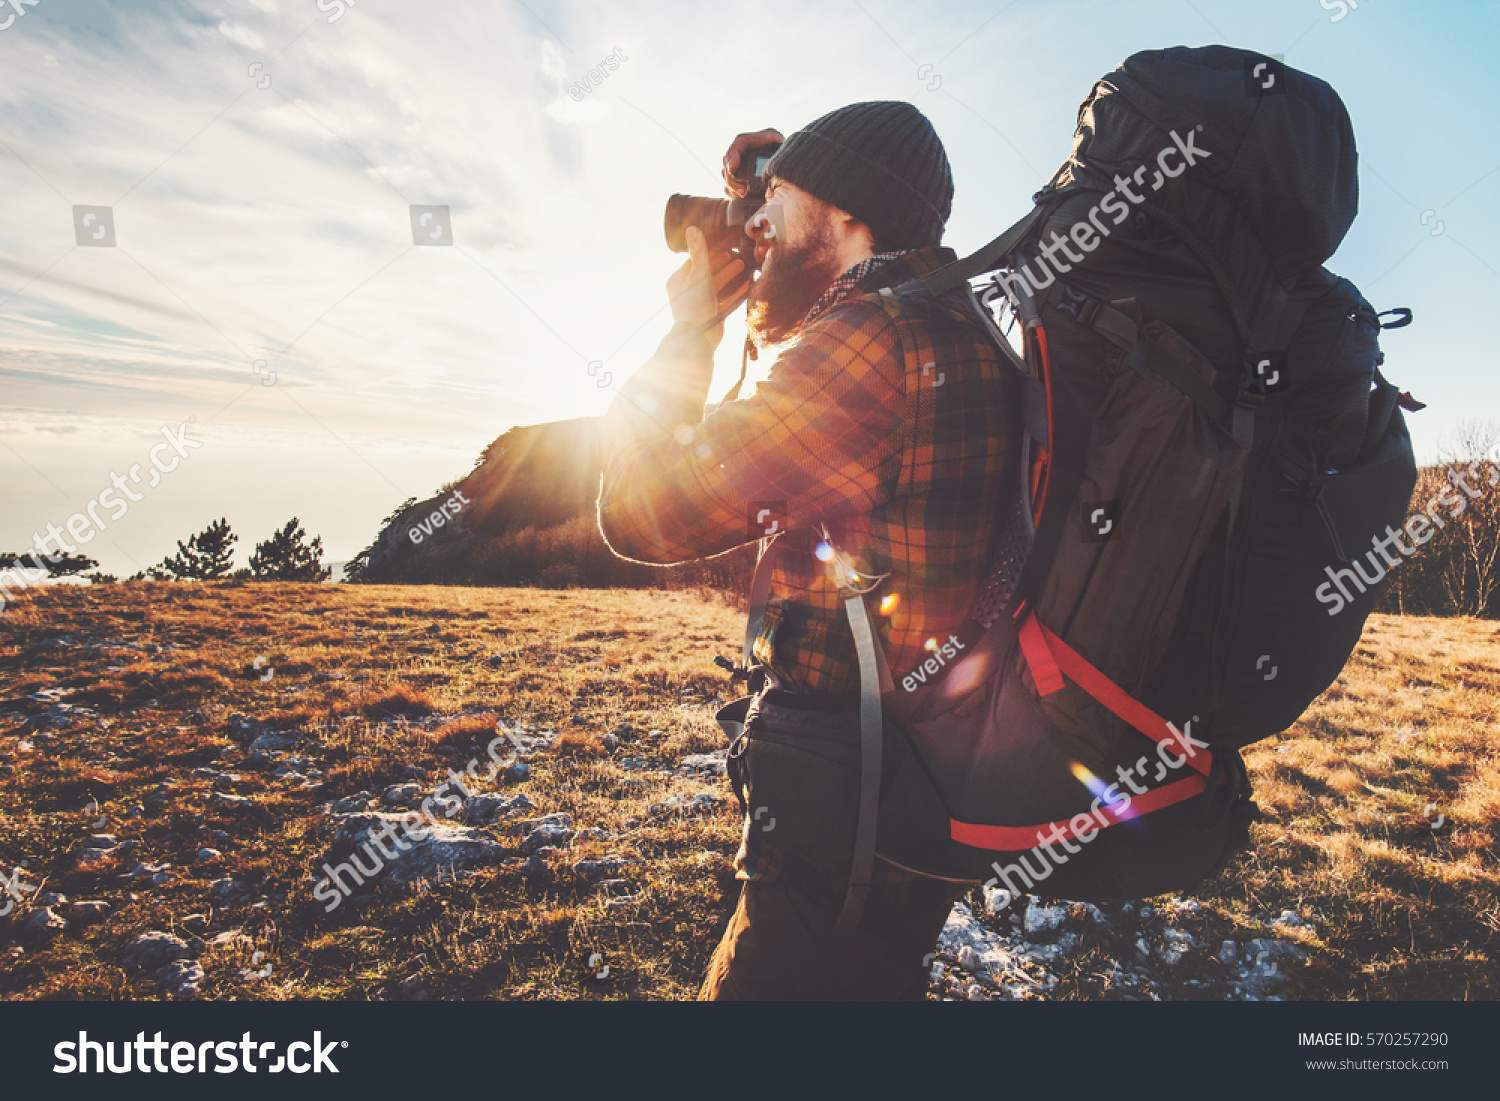 Man photographer with big backpack and camera taking photo of sunset mountains Travel Lifestyle hobby concept adventure active vacations outdoor  #570257290